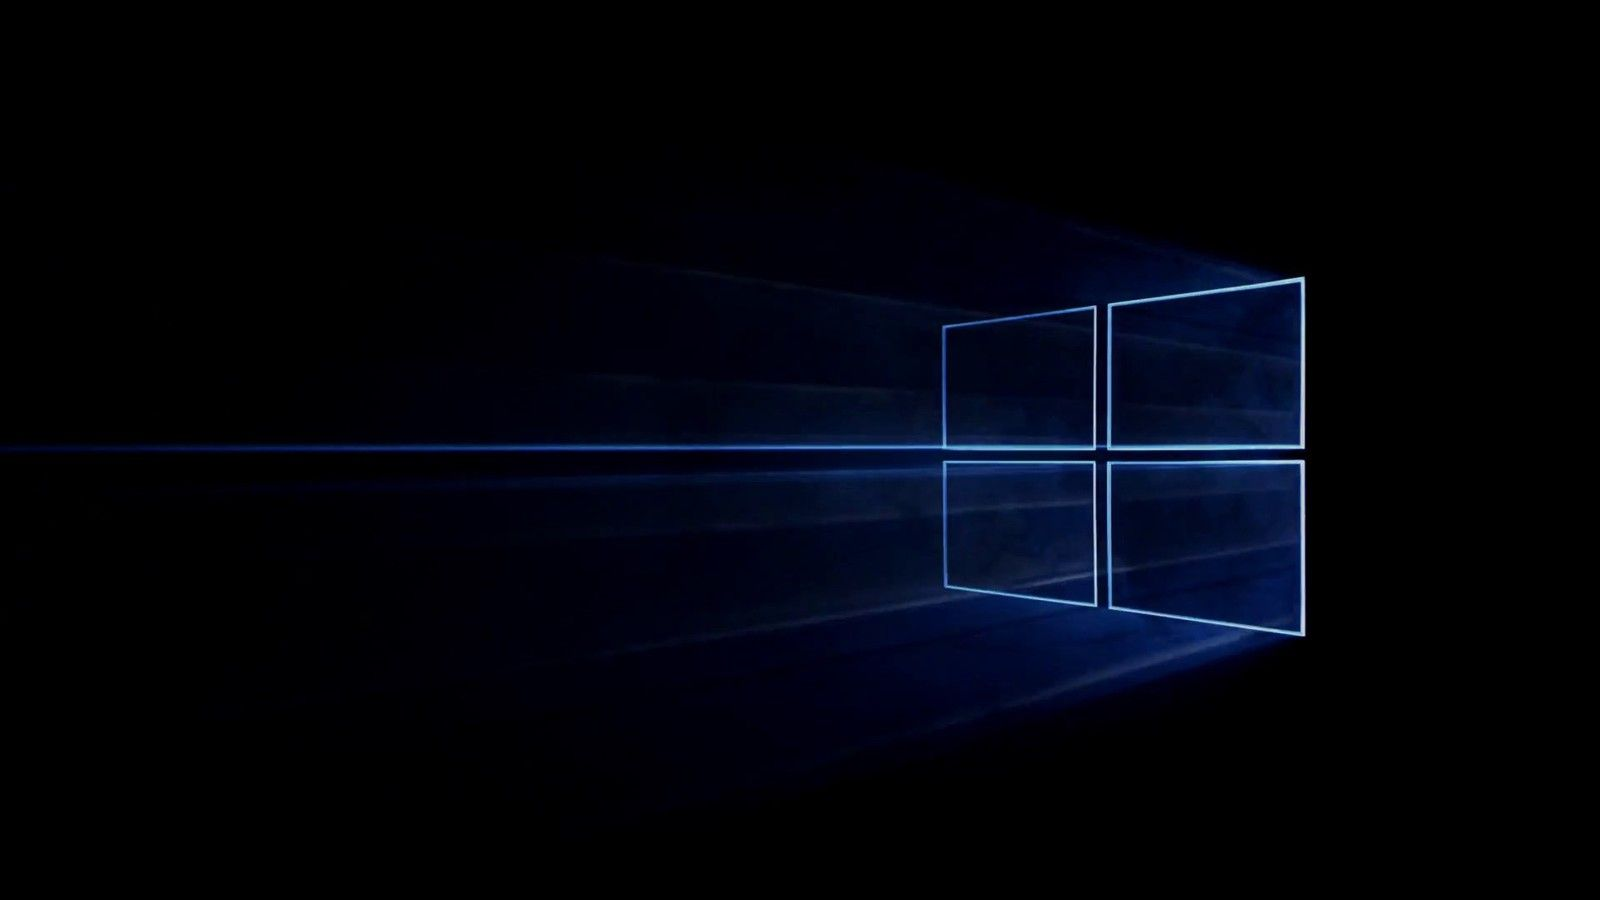 Troubleshoot And Fix The Black Screen Problem On Windows 10